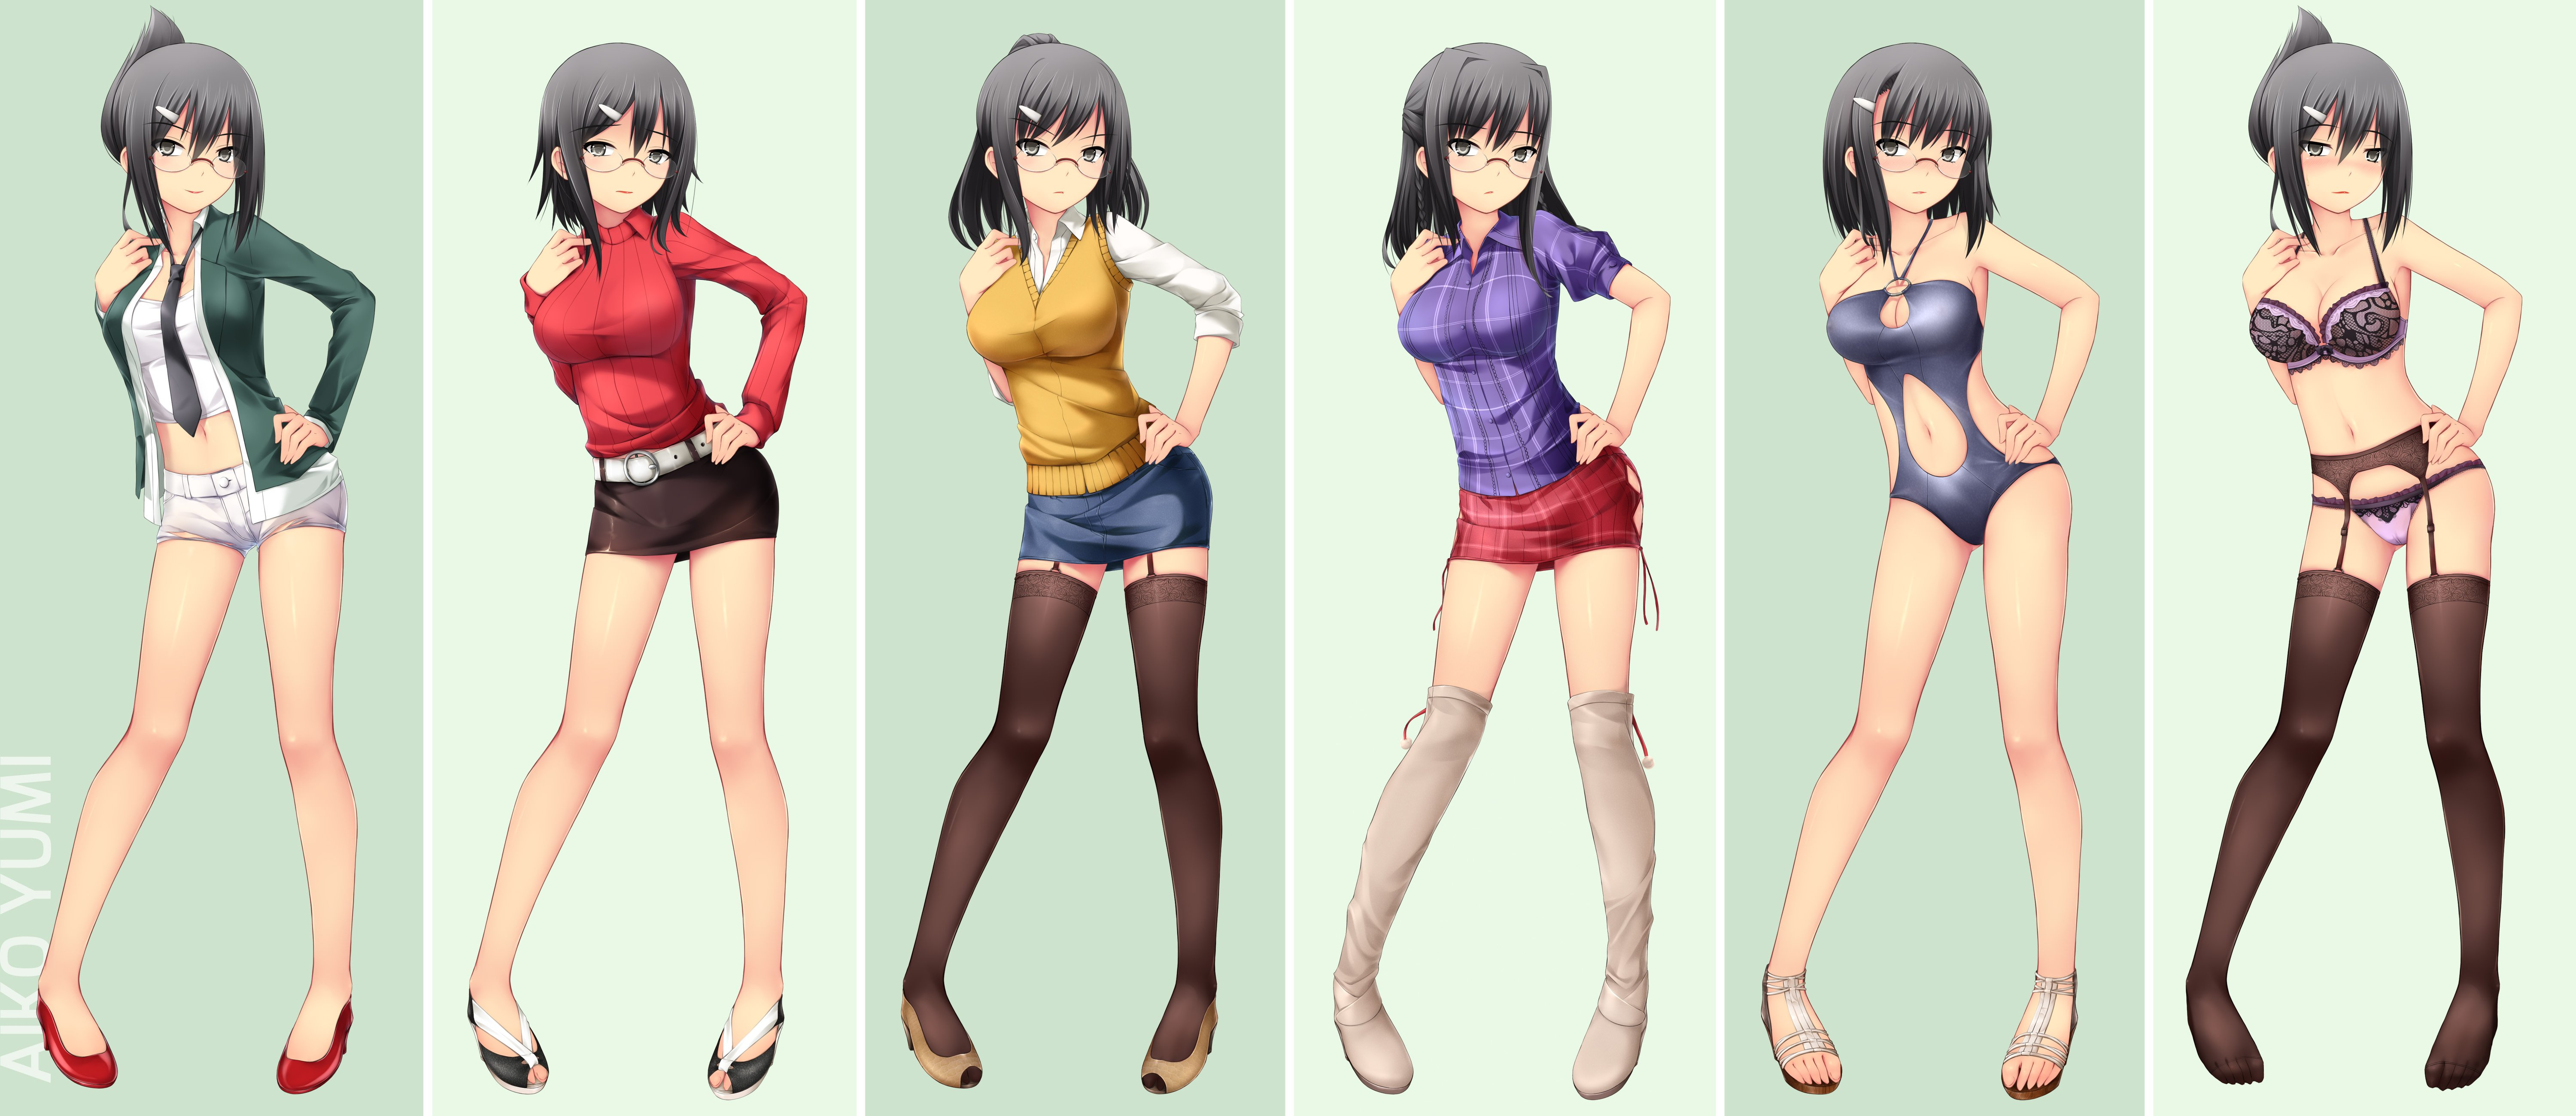 huniepop aiko pictures